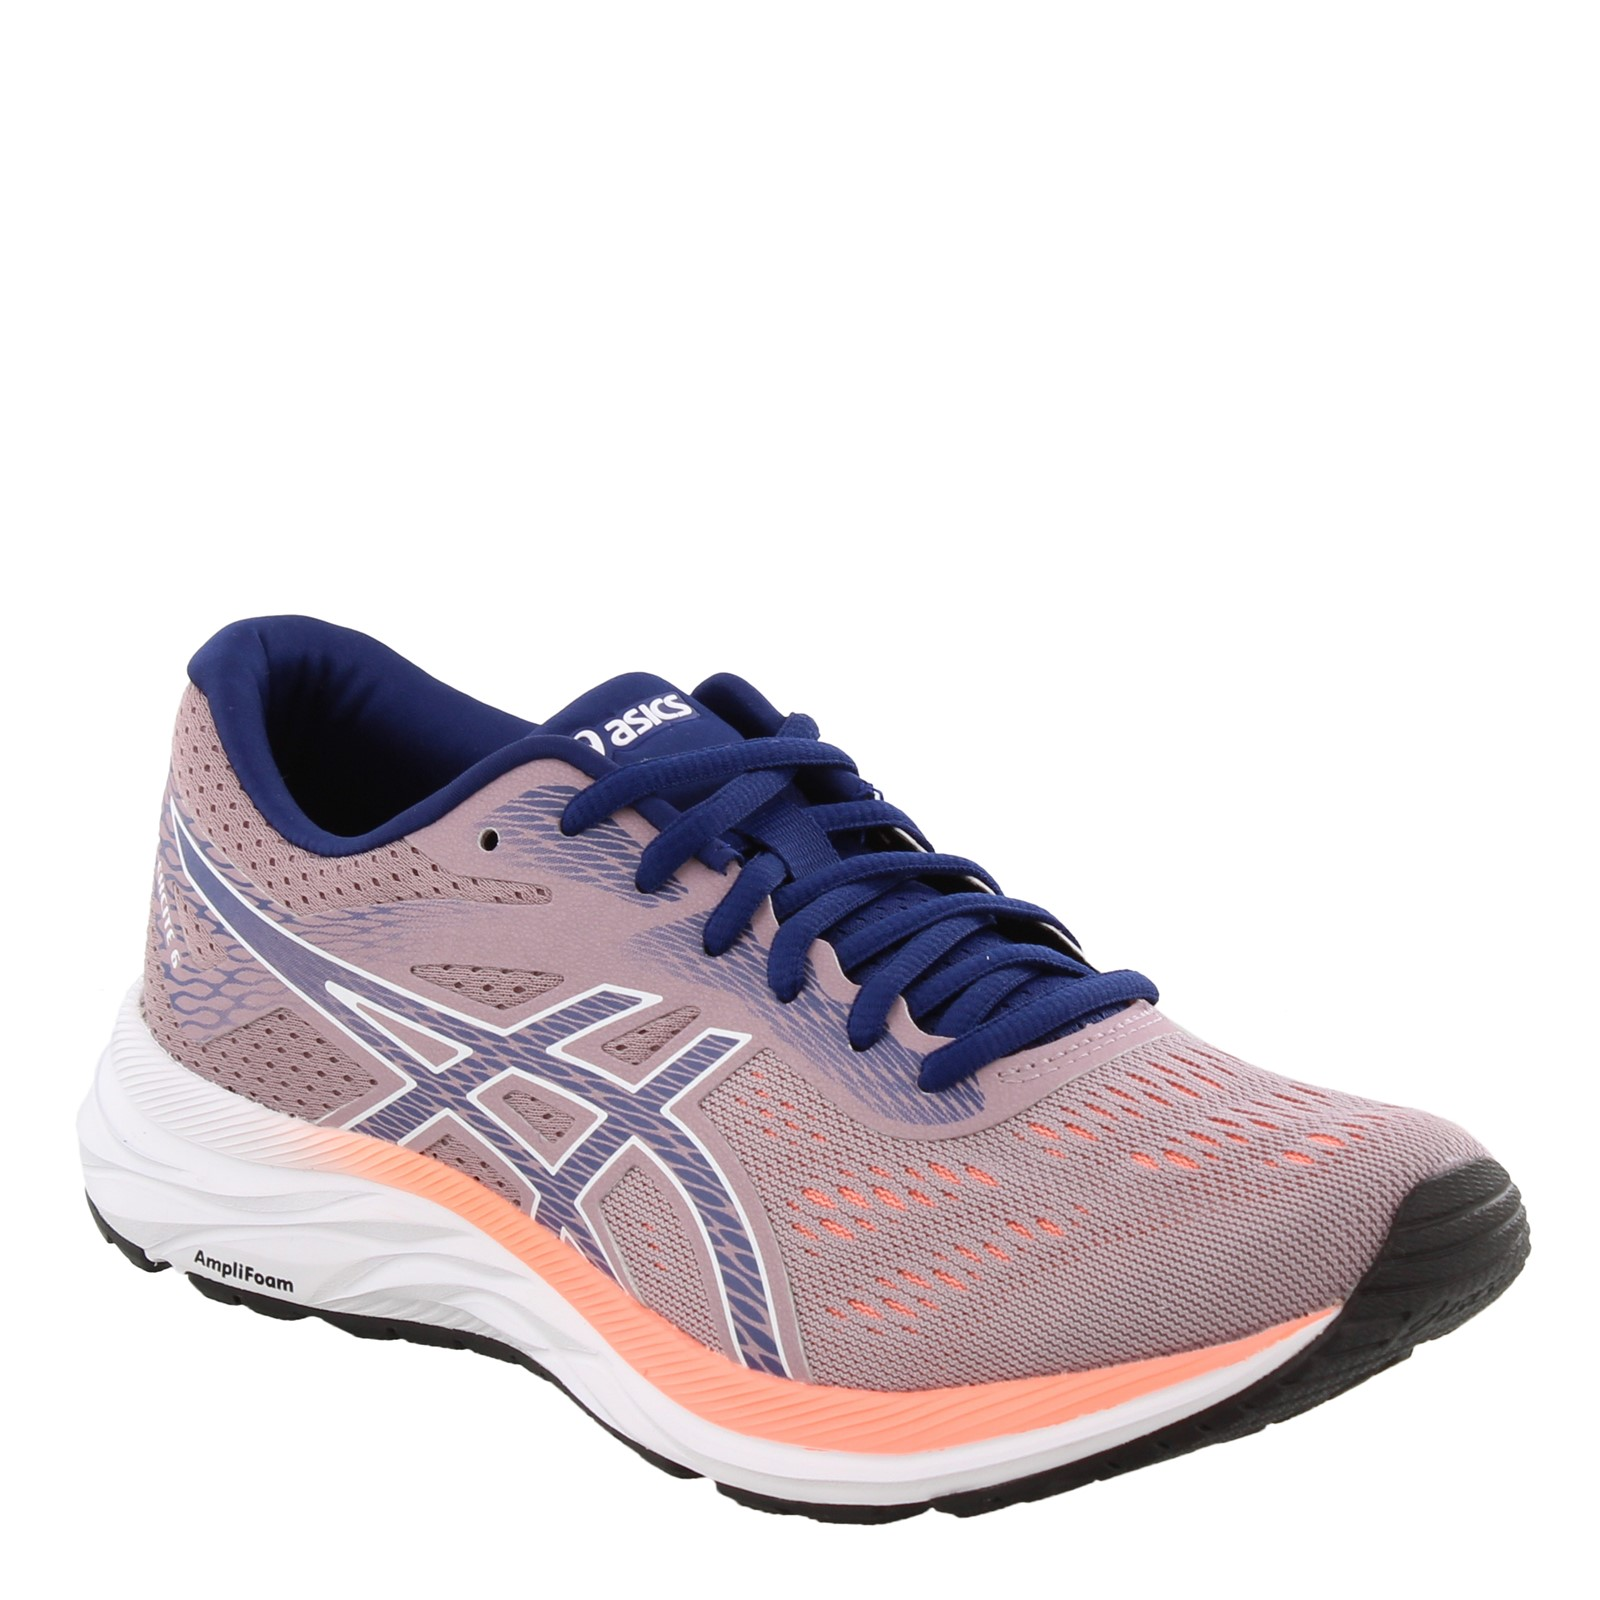 b0cd1dcb0618b3 Home; Women's Asics, Gel Excite 6 Running Shoes. Previous. default view ...